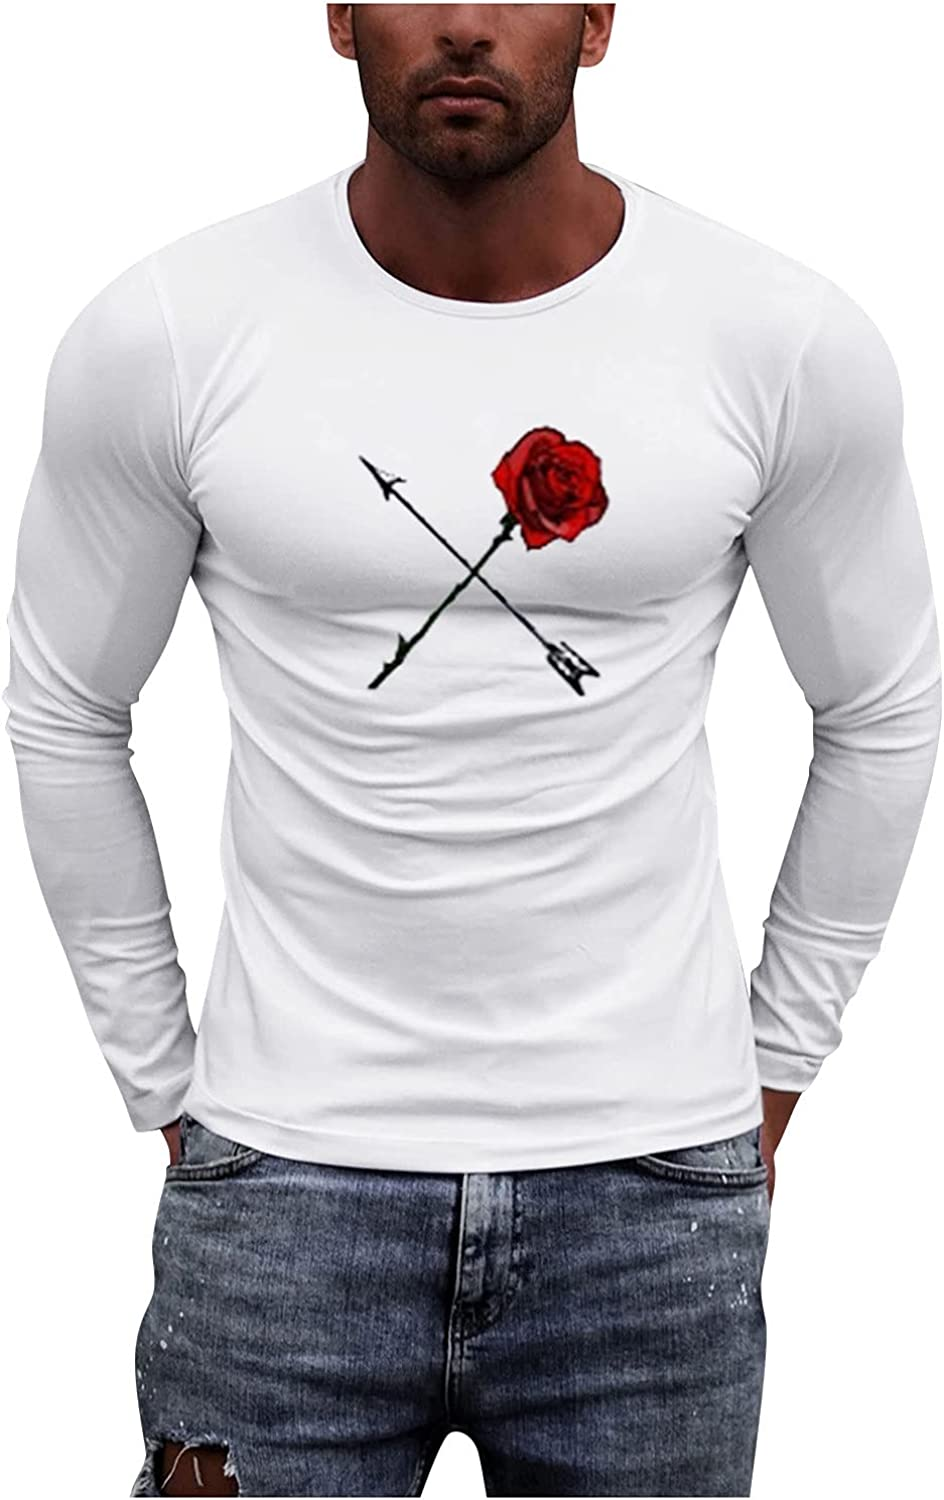 Men's T-Shirts Graphic Vintage Long Sleeve Tee Shirts for Men White Workwear Lightweight O Neck Printed Tops Blouse